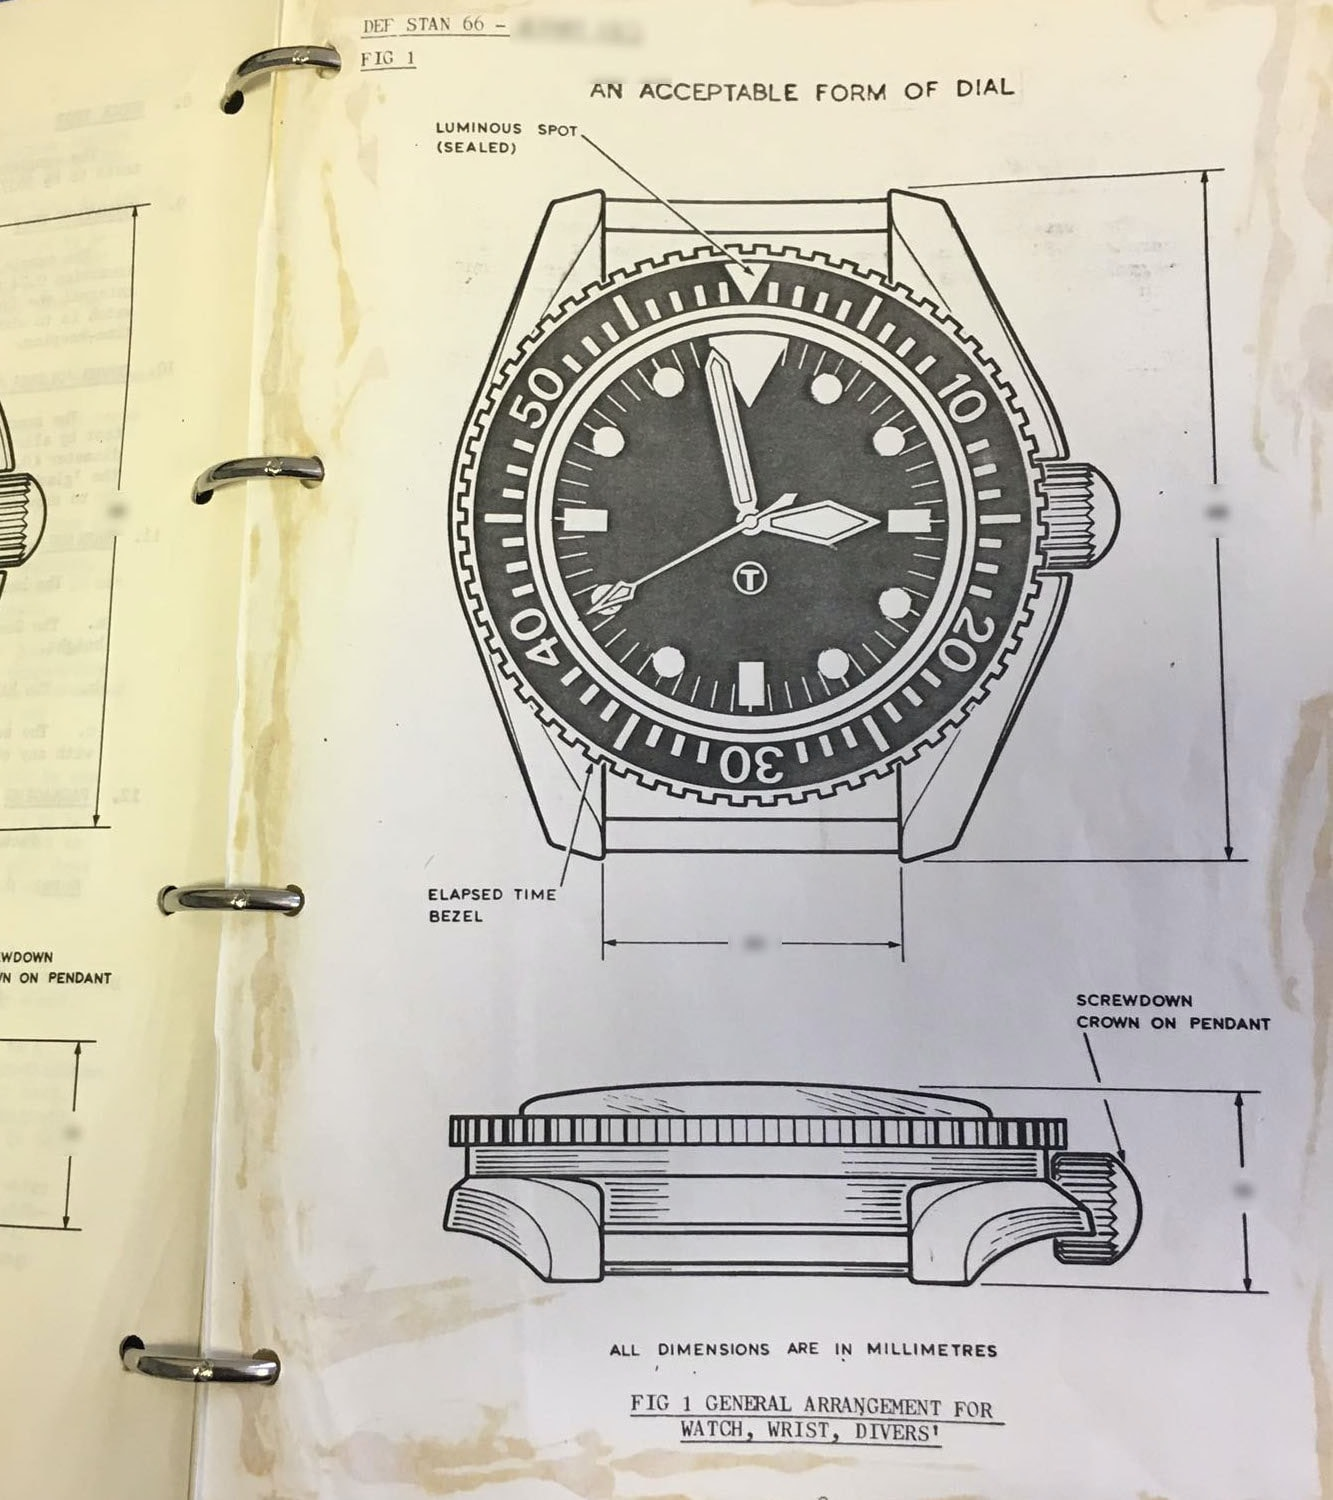 first cwc dive watch automatic Historical Perspectives: CWC: The Watch That Replaced The MilSub Historical Perspectives: CWC: The Watch That Replaced The MilSub DEFSTAN